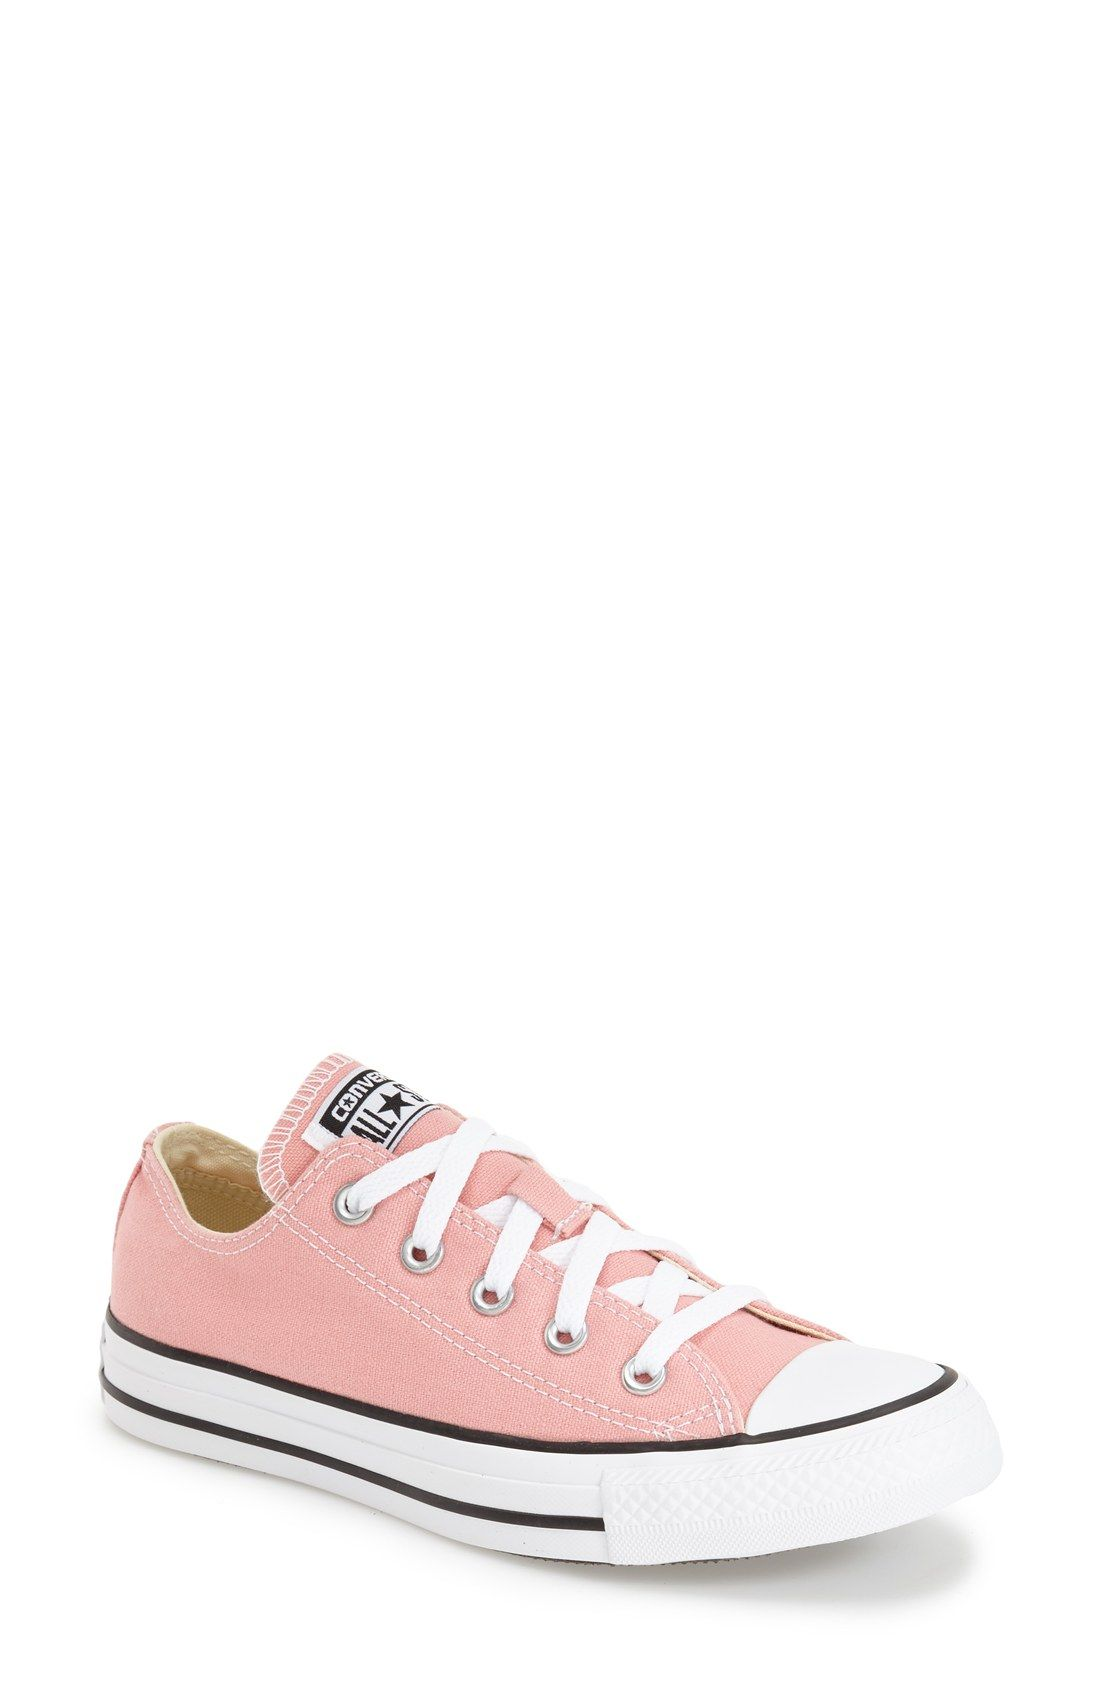 cca5a4e1842 Adding a sweet touch to the classic Converse low top sneaker by making them  pink. Can t wait to add these to the collection!